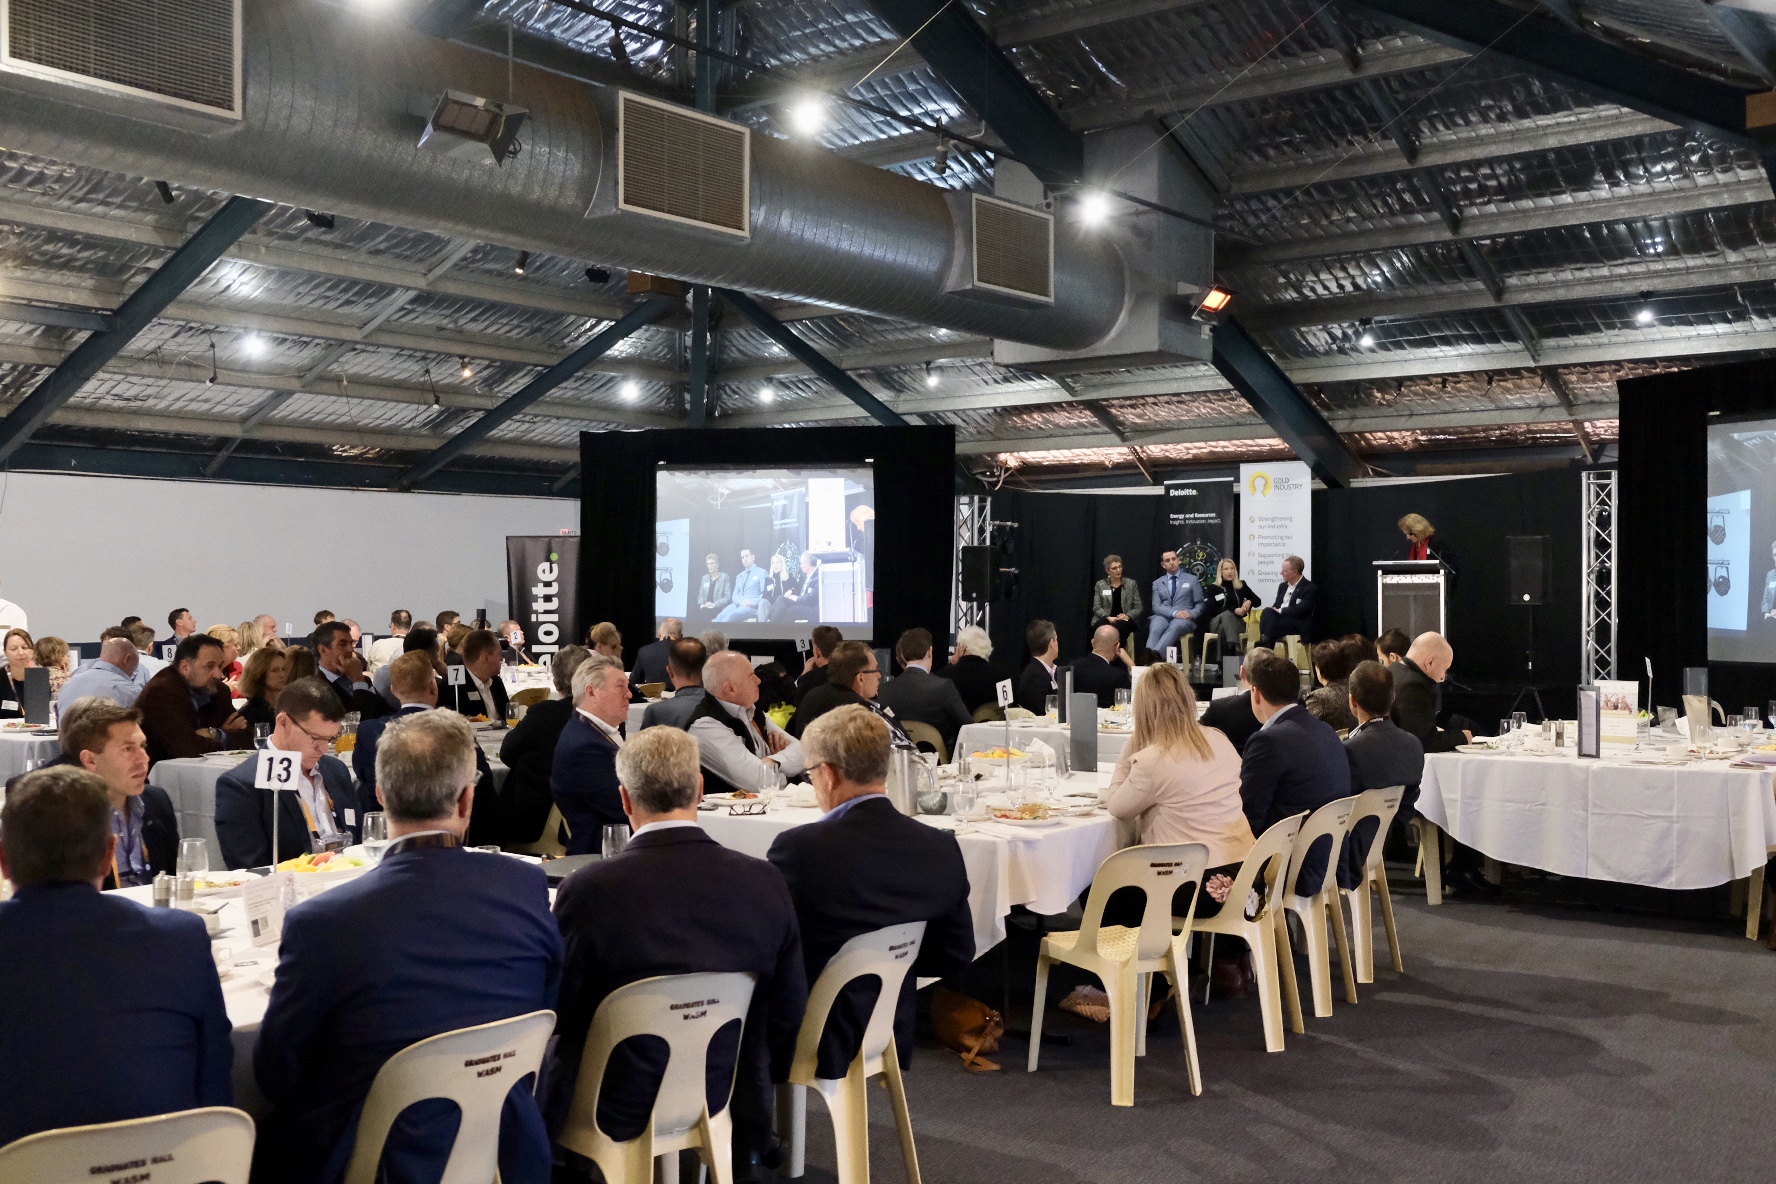 GIG and Deloitte's annual breakfast event drew a 140-strong crowd to explore the image of mining.